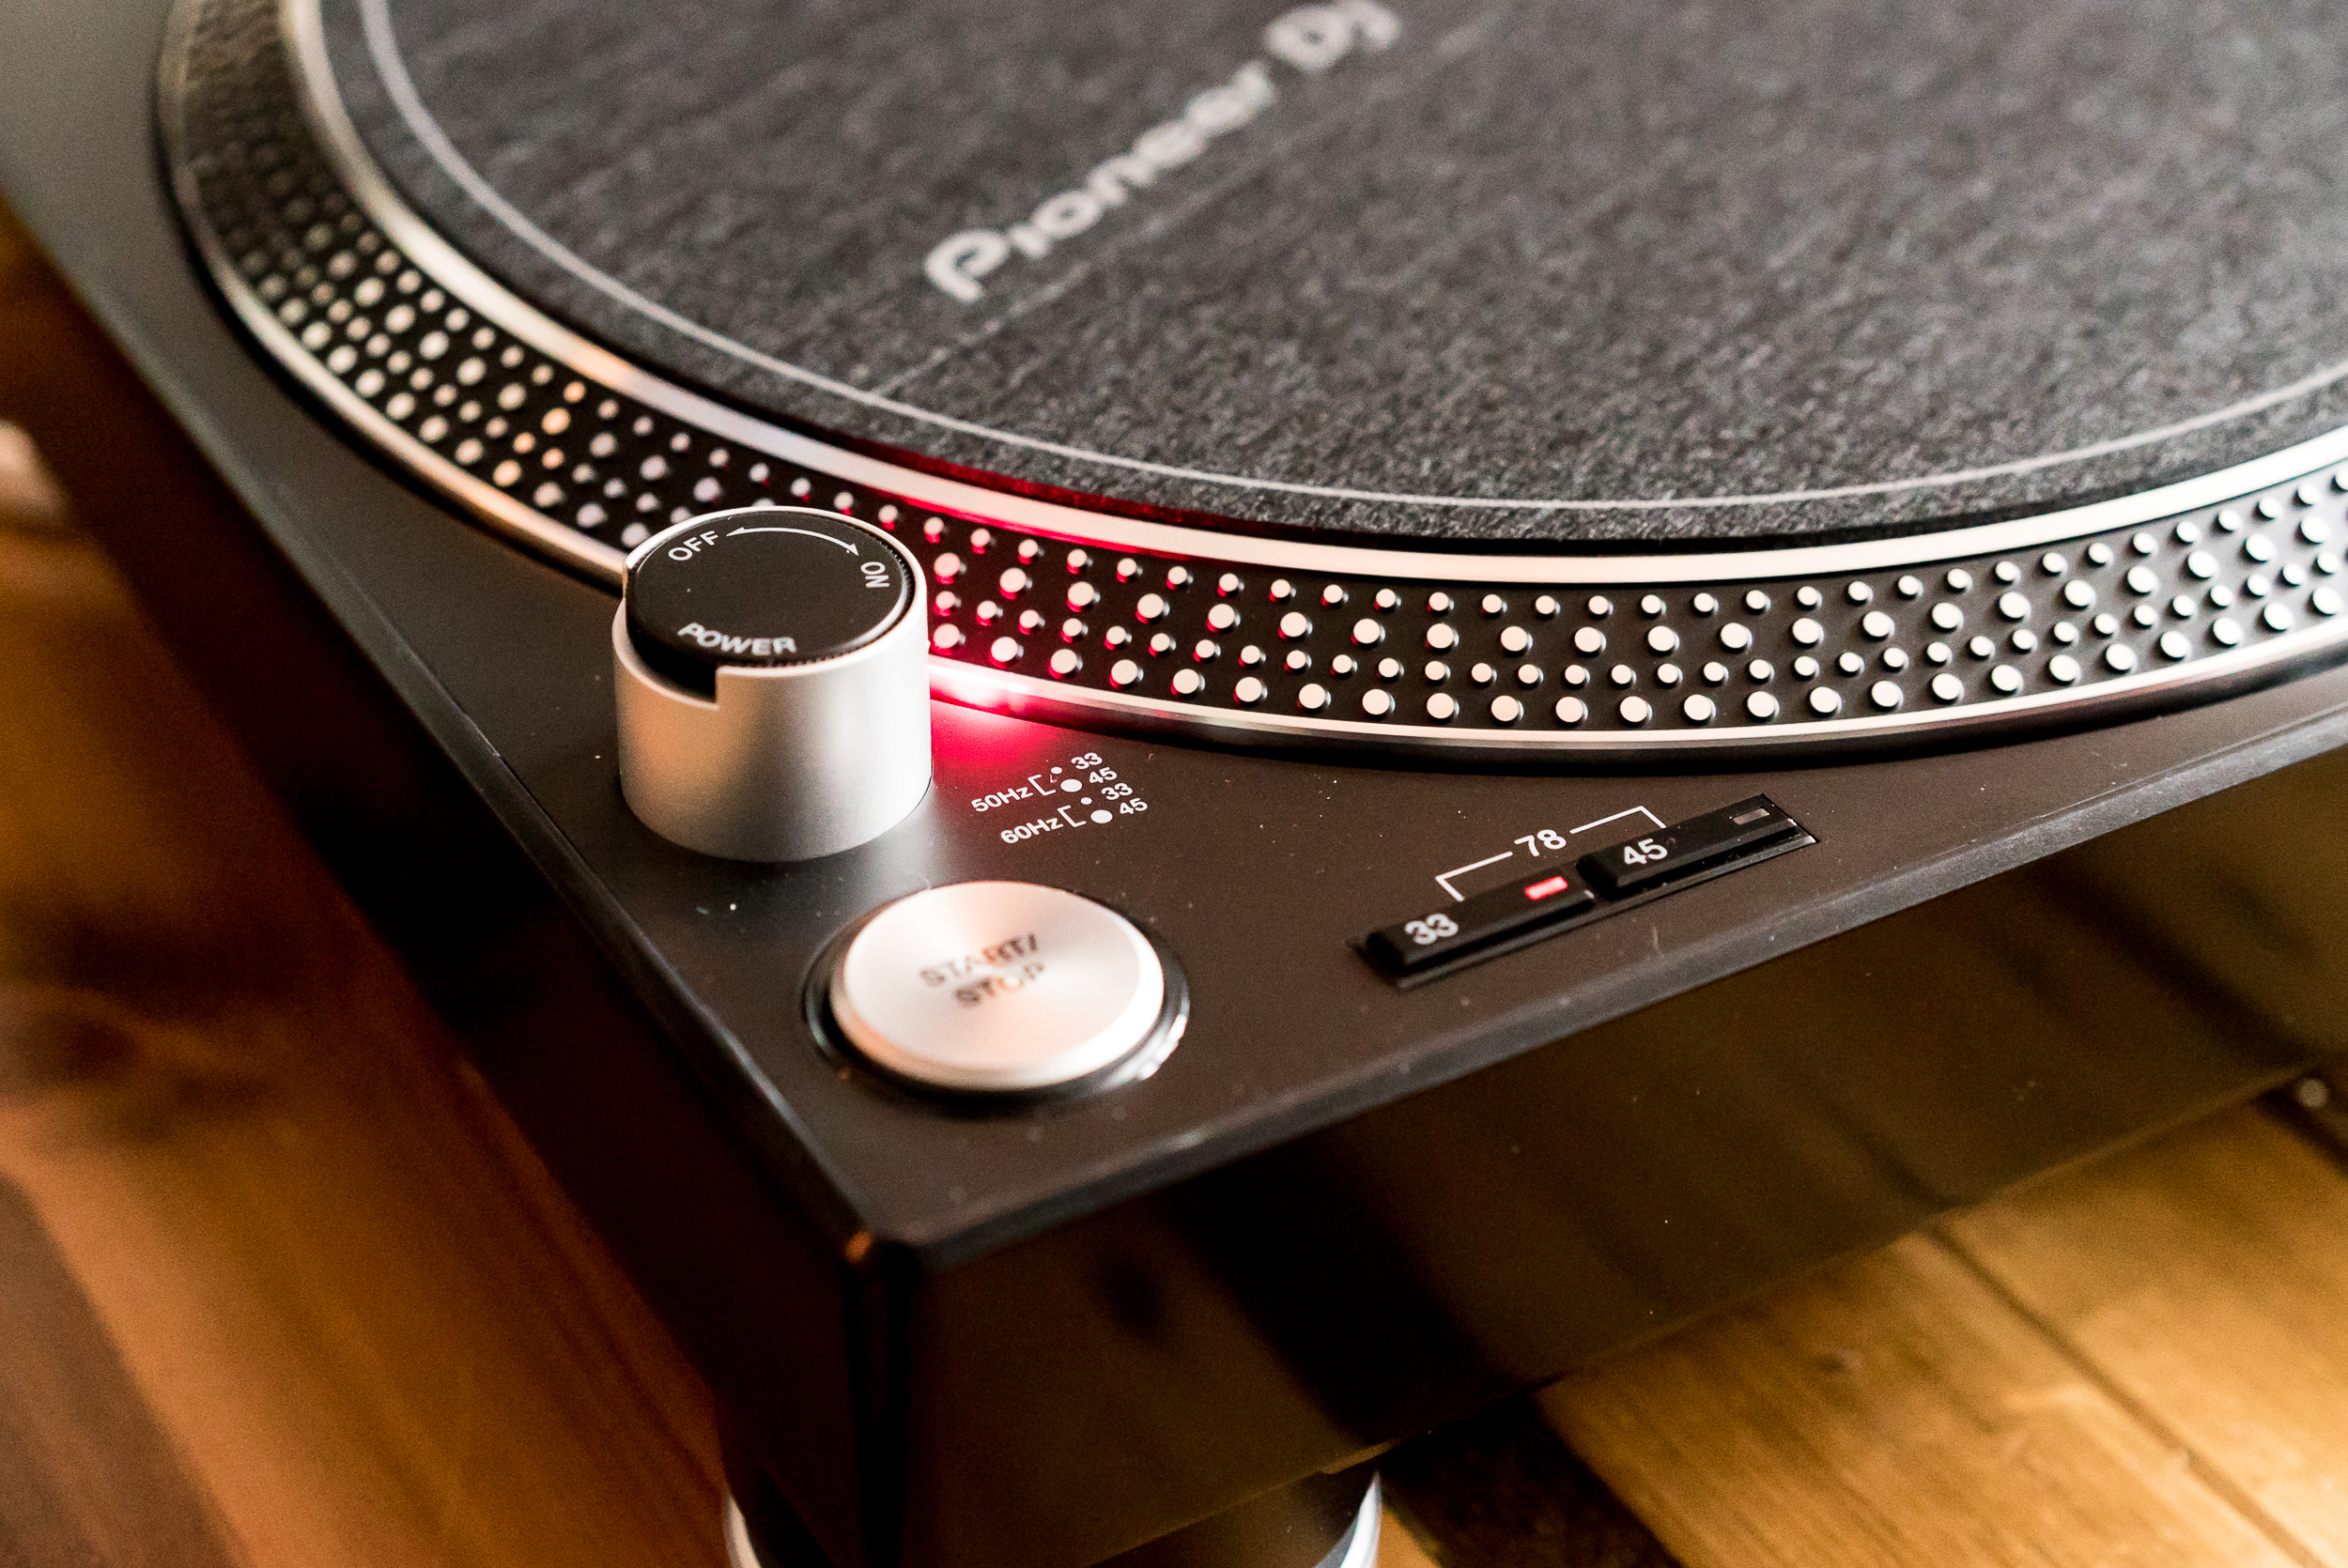 Pioneer PLX-500 review: A turntable for vinyl n00bs and